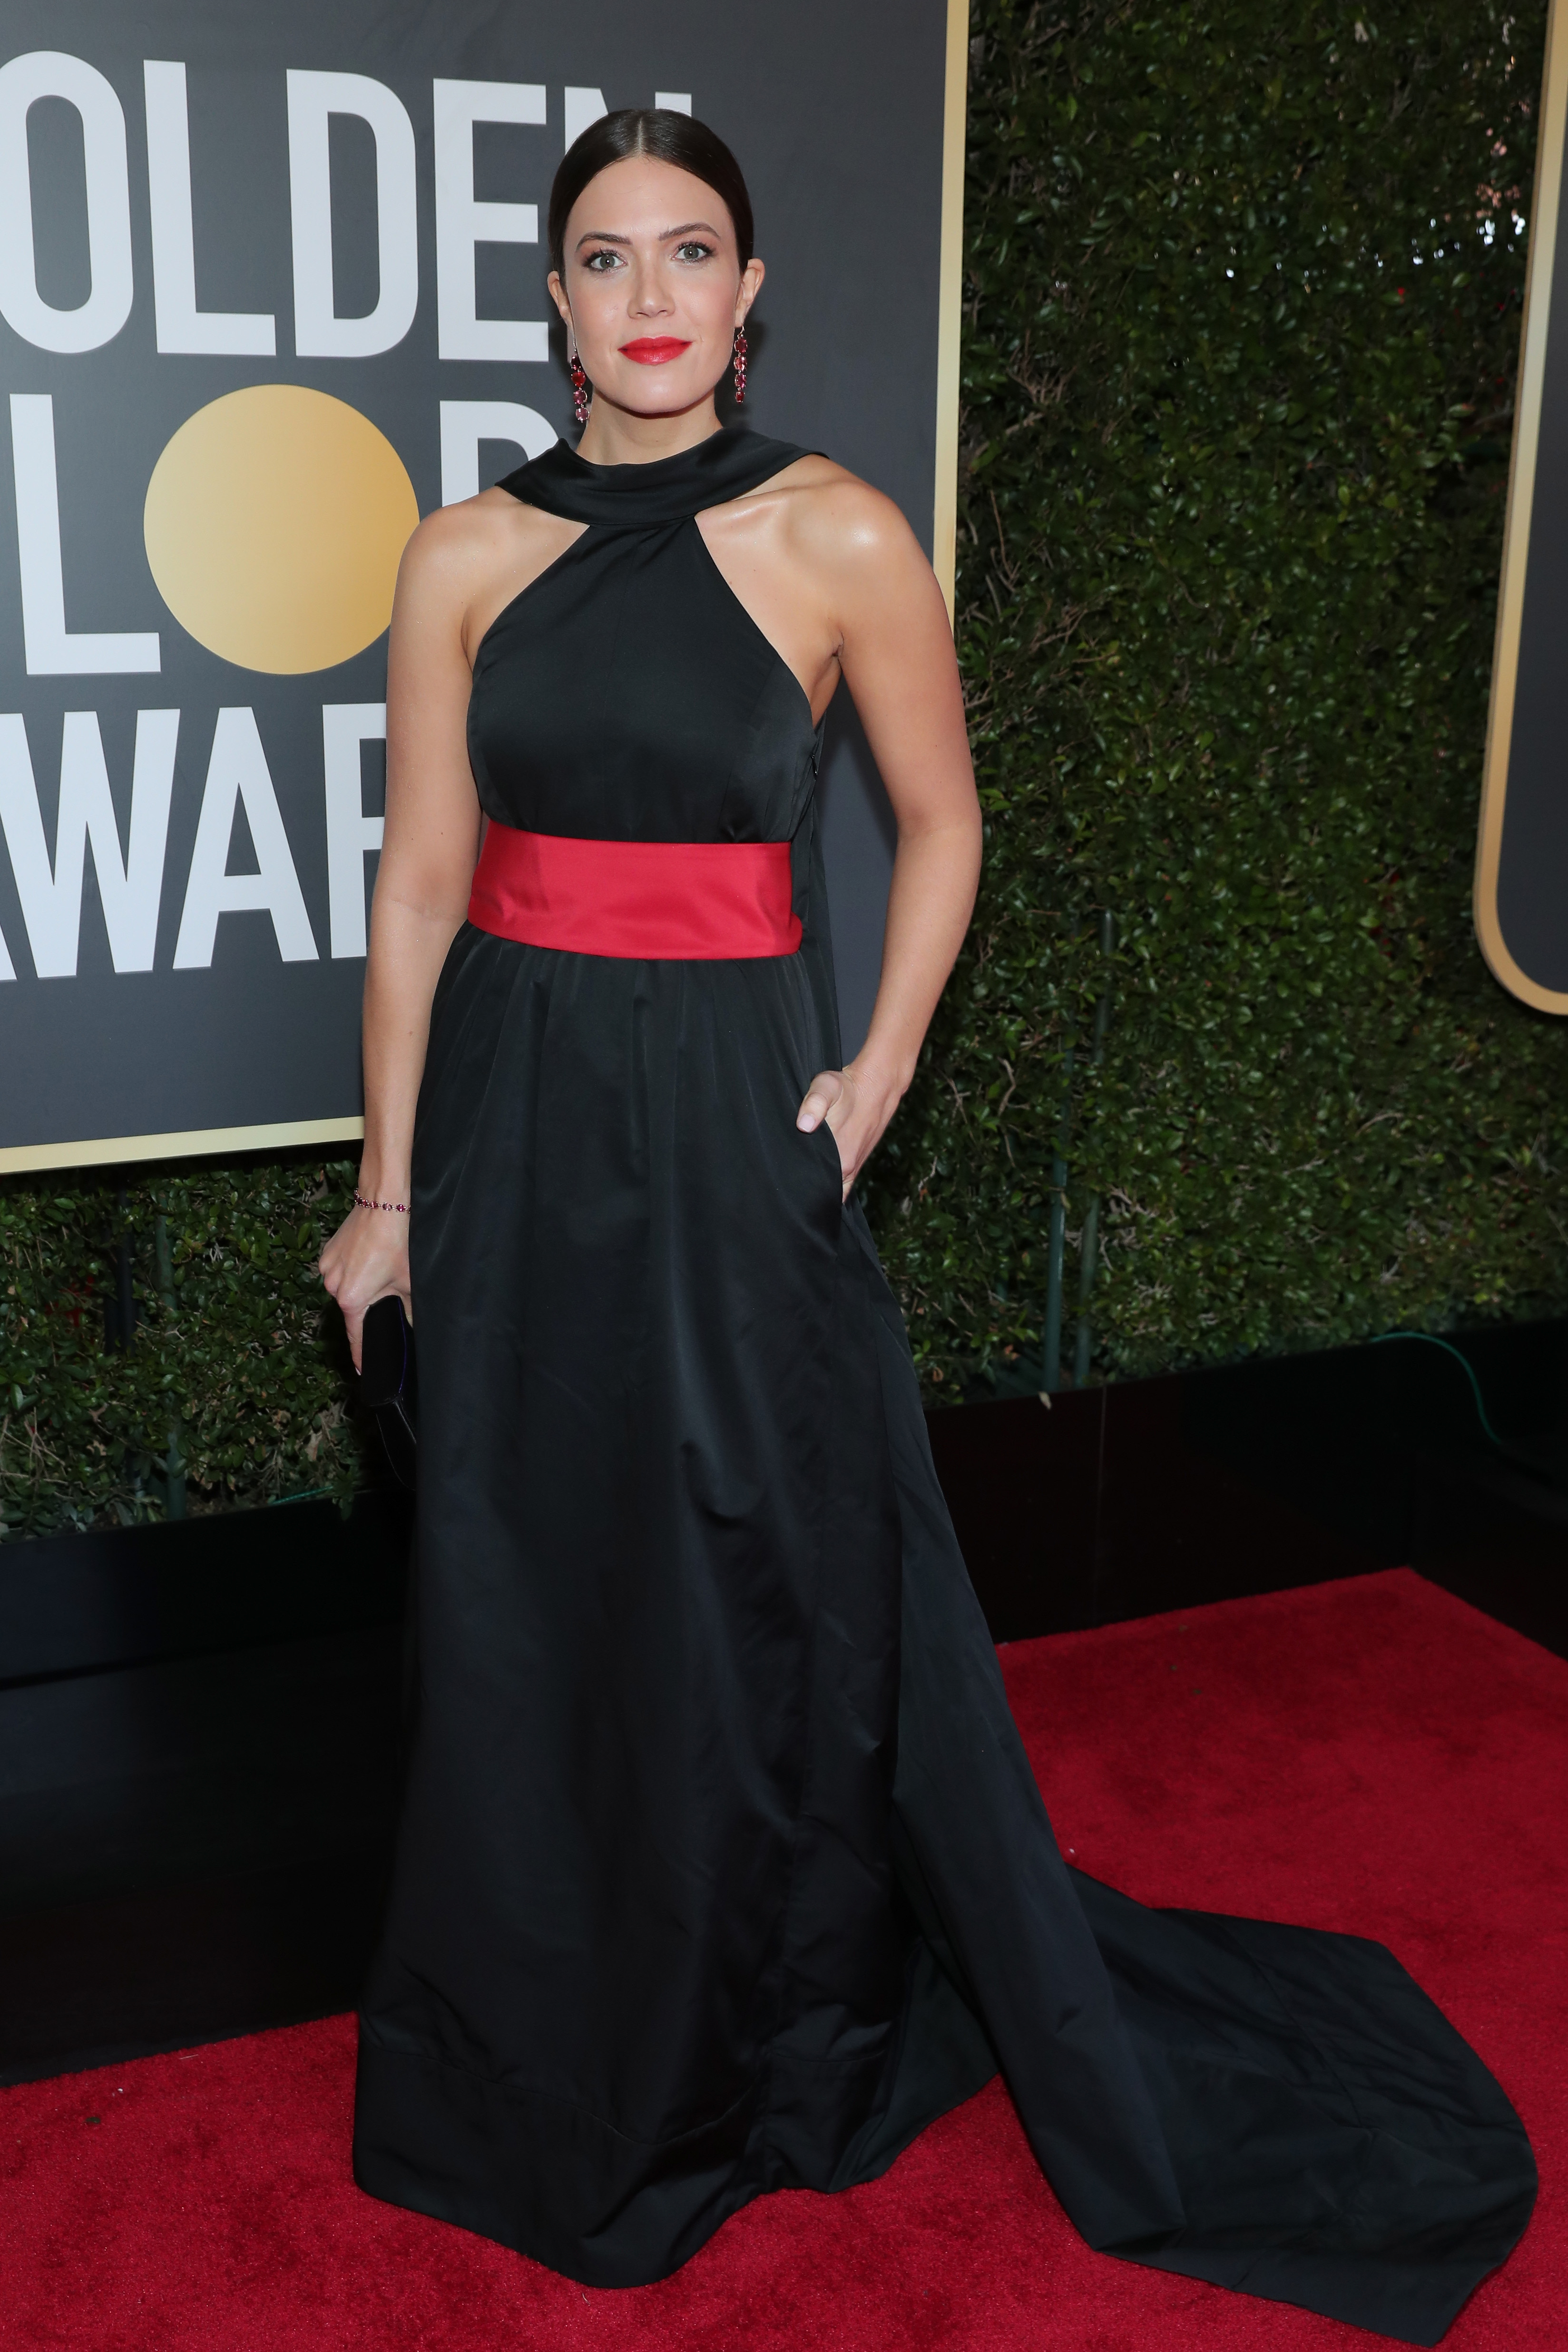 Mandy Moore arrives to the 75th Annual Golden Globe Awards held at the Beverly Hilton Hotel on January 7, 2018